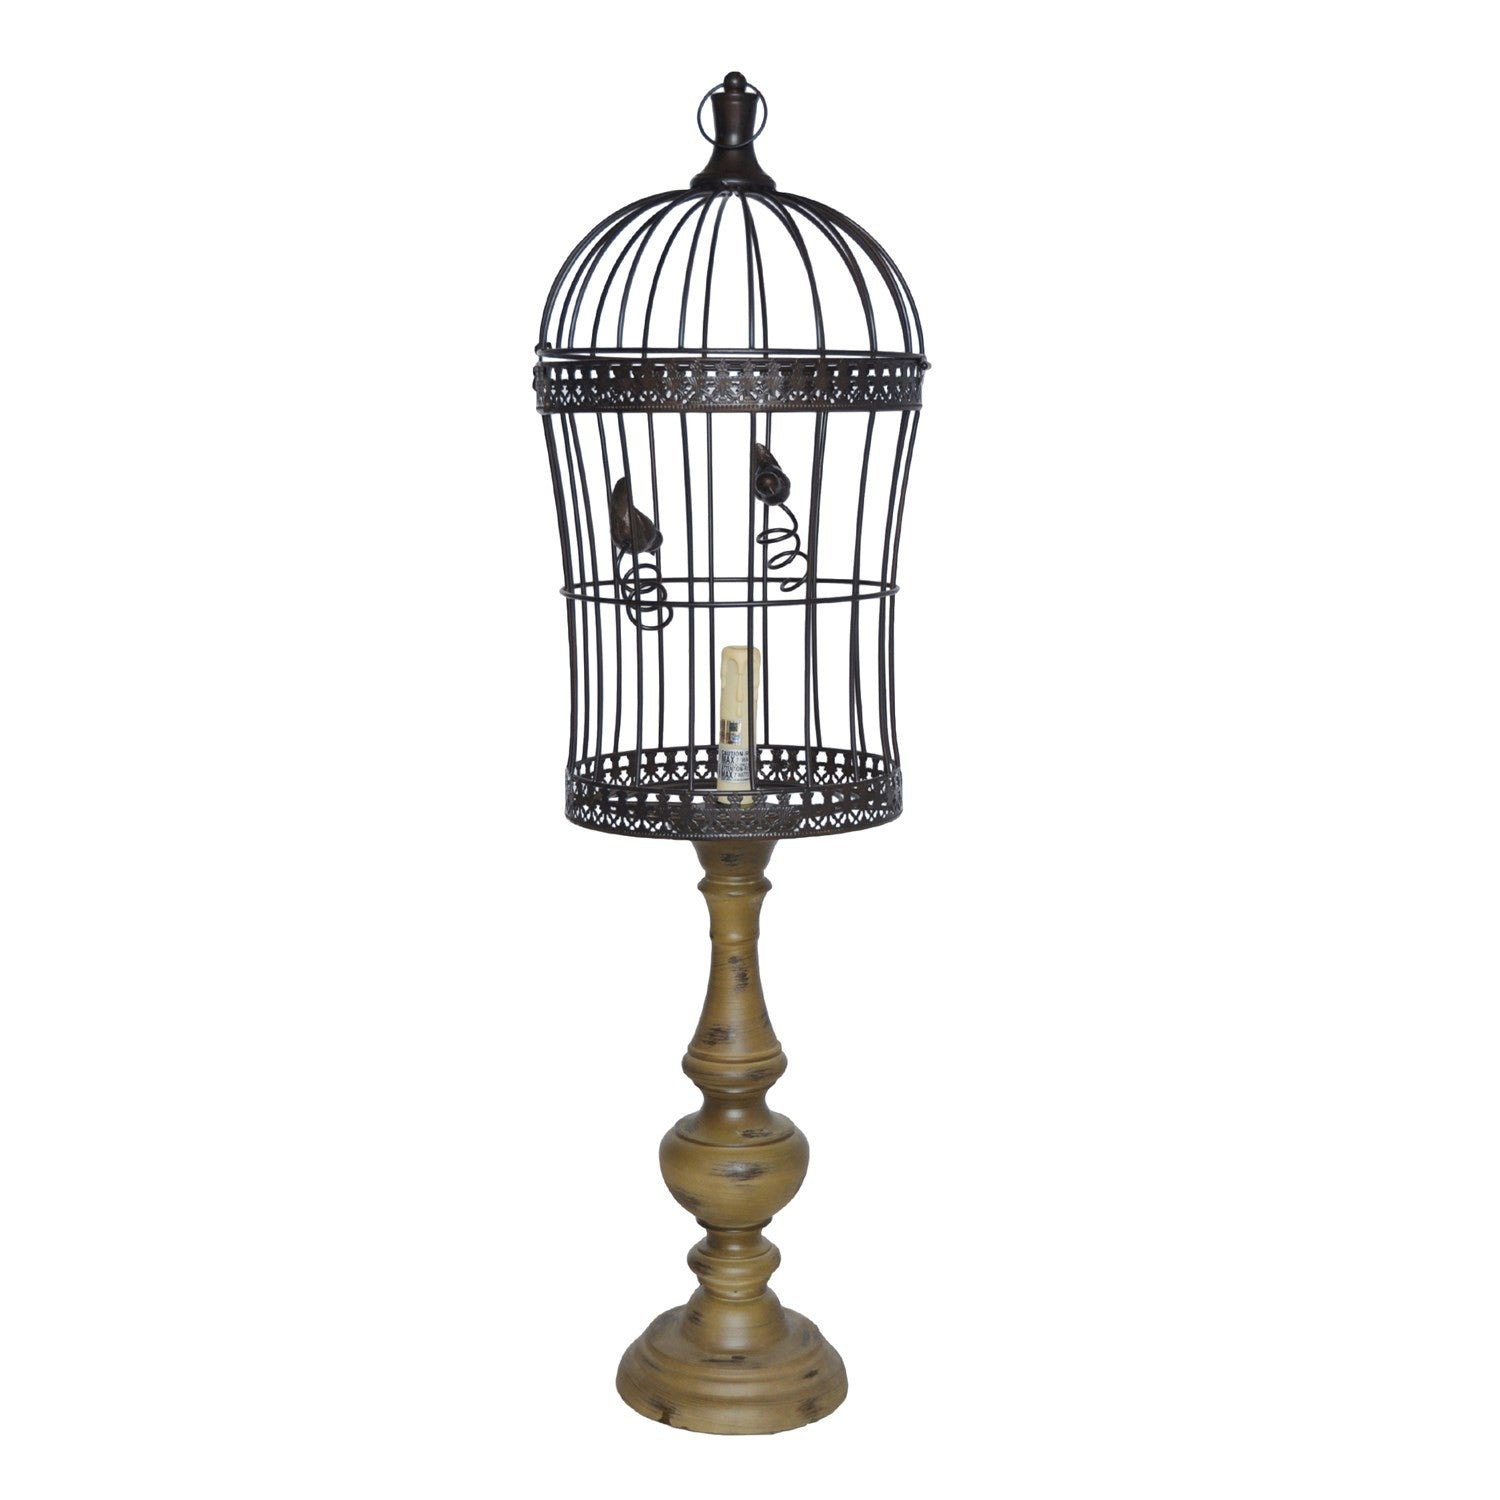 creating cage a home birdcage bird decorative lamp